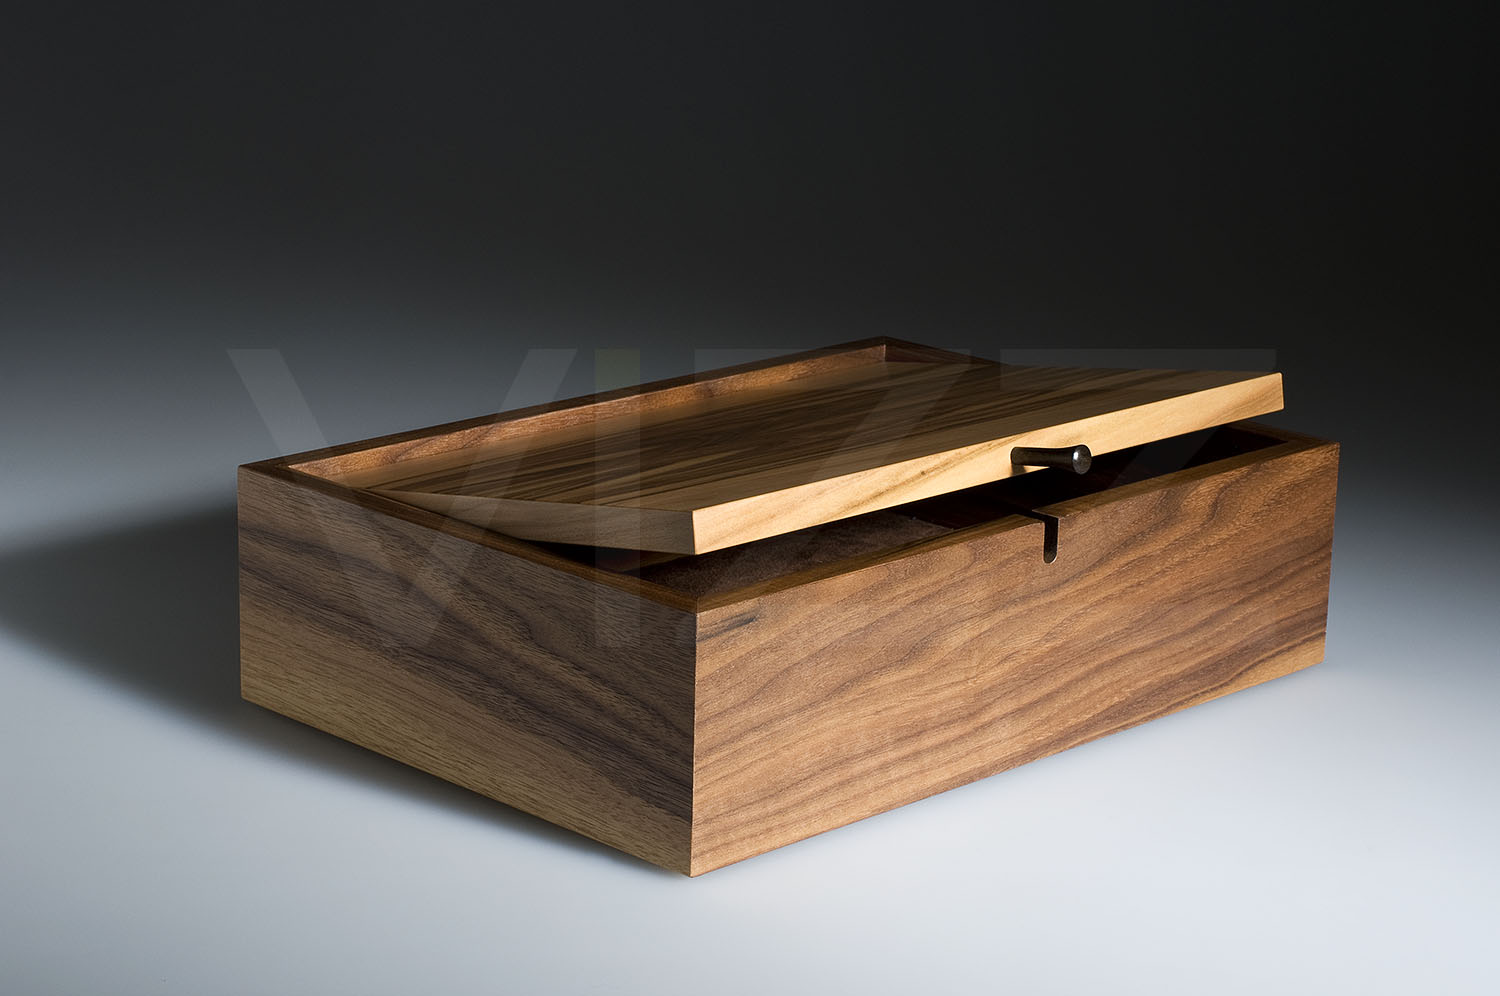 Jewellery box by Mark Hanvey - we photographed another version of this box a while ago - still a pleasure to see and photograph.